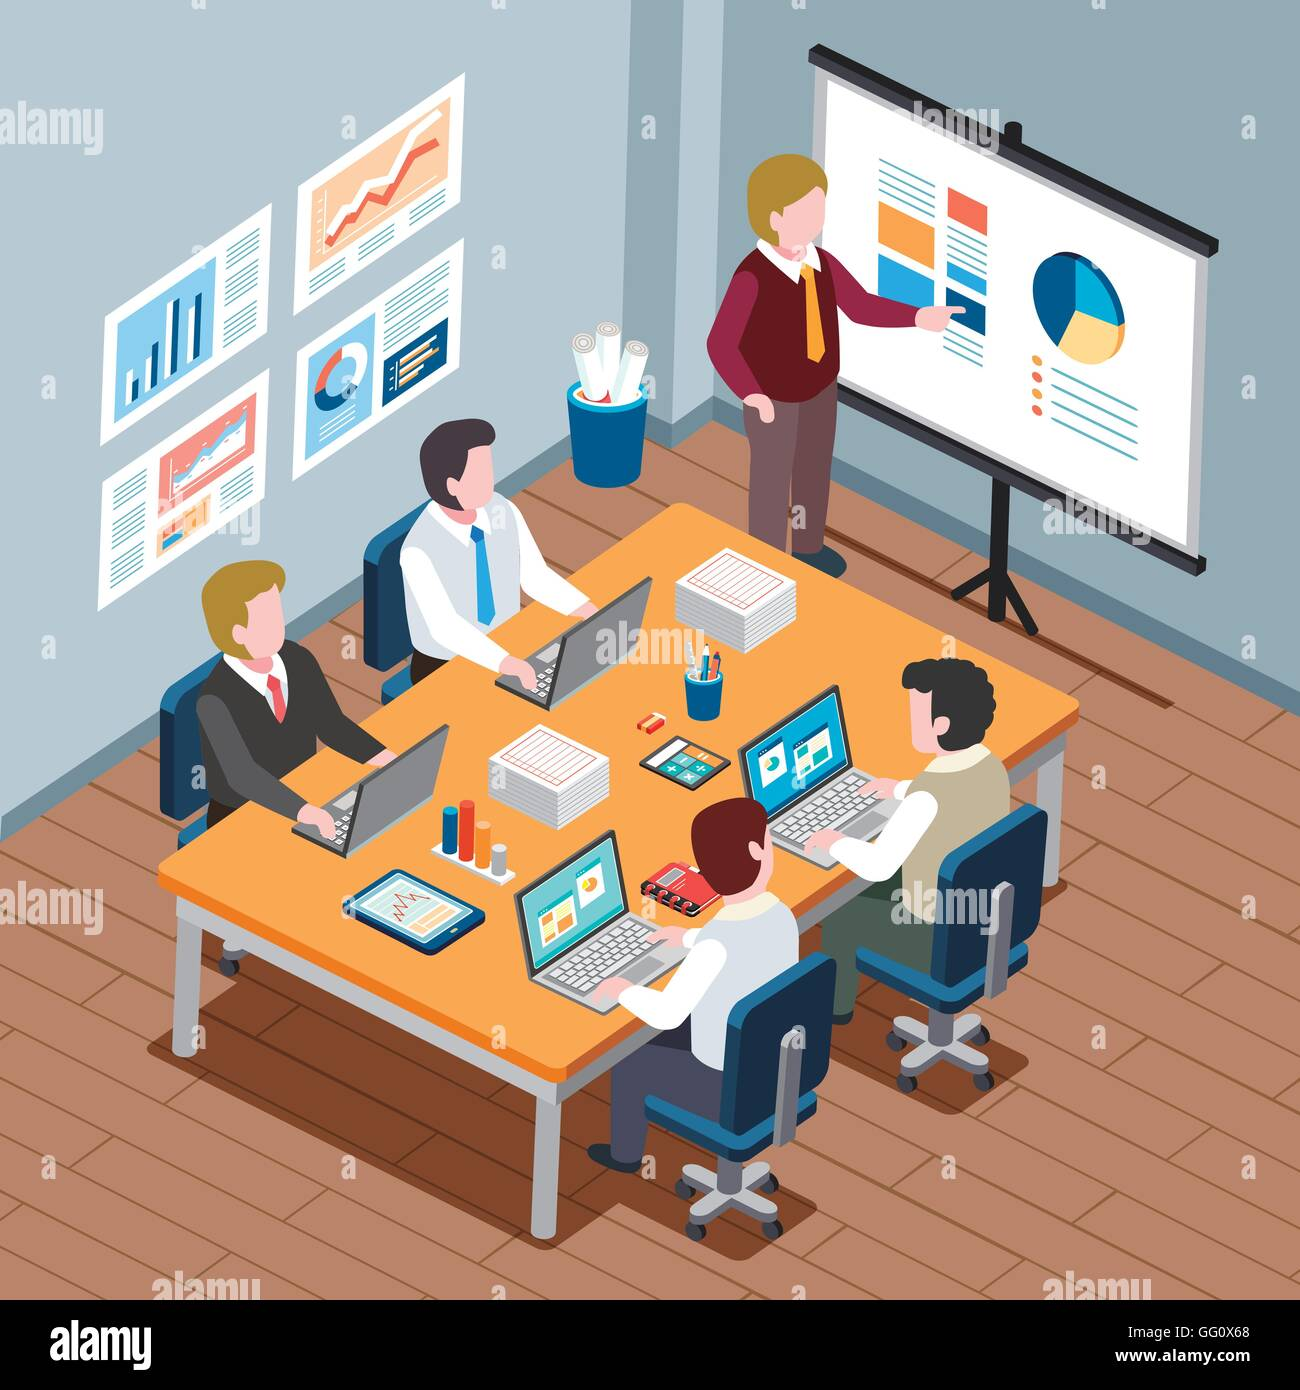 Flat 3d isometric design office meeting concept stock for 3d flat design online